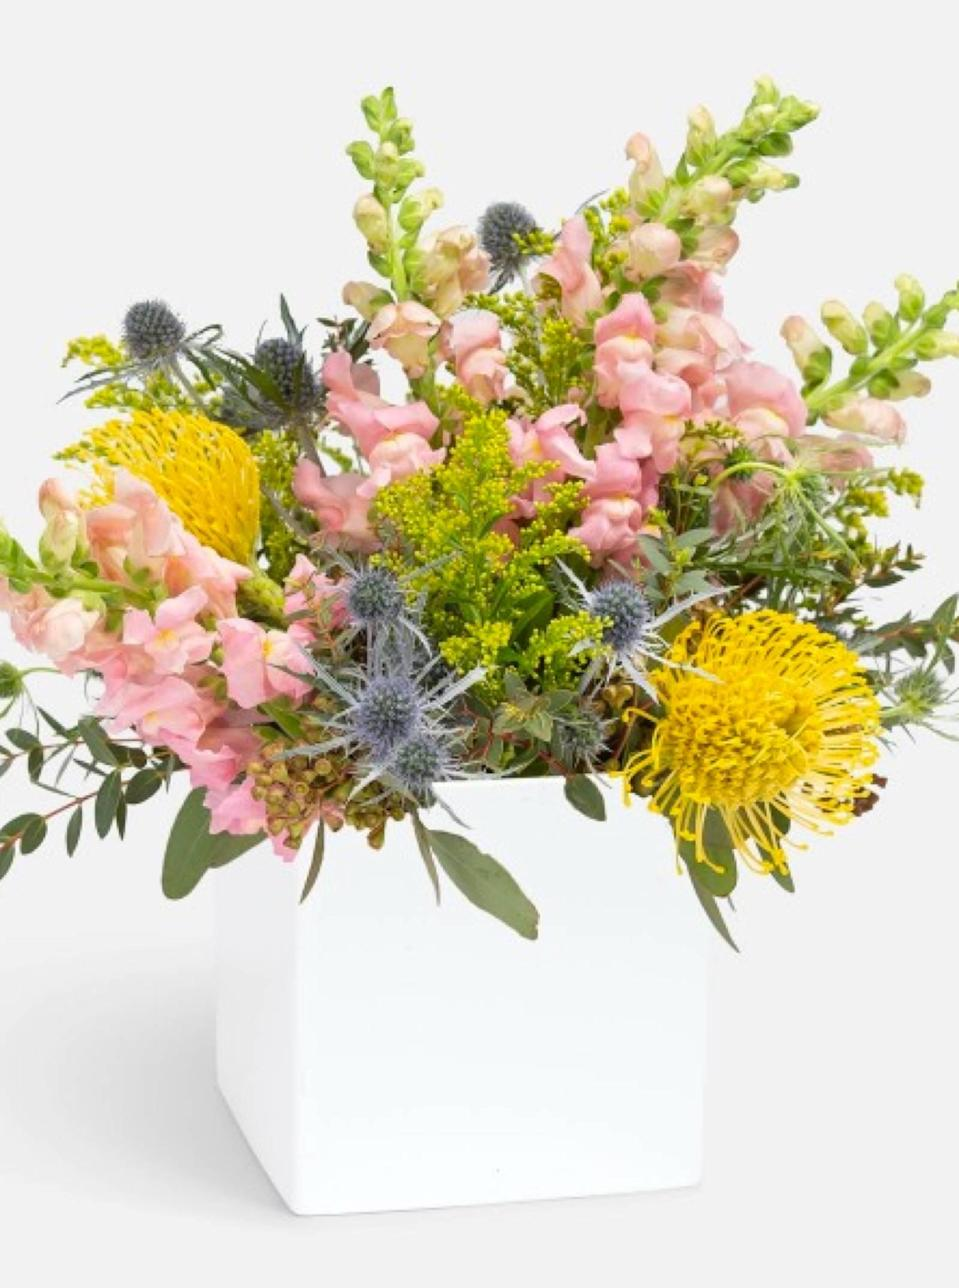 "Talk about a pastel dream. PlantShed hand-delivers its fresh blooms in adorable vases for New York City and New Jersey locals—and if you're in the area, you'll be forgiven for ordering last-minute. Same-day delivery options are available if you're in a pinch, as is local pickup at any one of its four locations in Manhattan and New Jersey. $95, Smiles In Sydney. <a href=""https://www.plantshed.com/smiles-in-sydney"" rel=""nofollow noopener"" target=""_blank"" data-ylk=""slk:Get it now!"" class=""link rapid-noclick-resp"">Get it now!</a>"